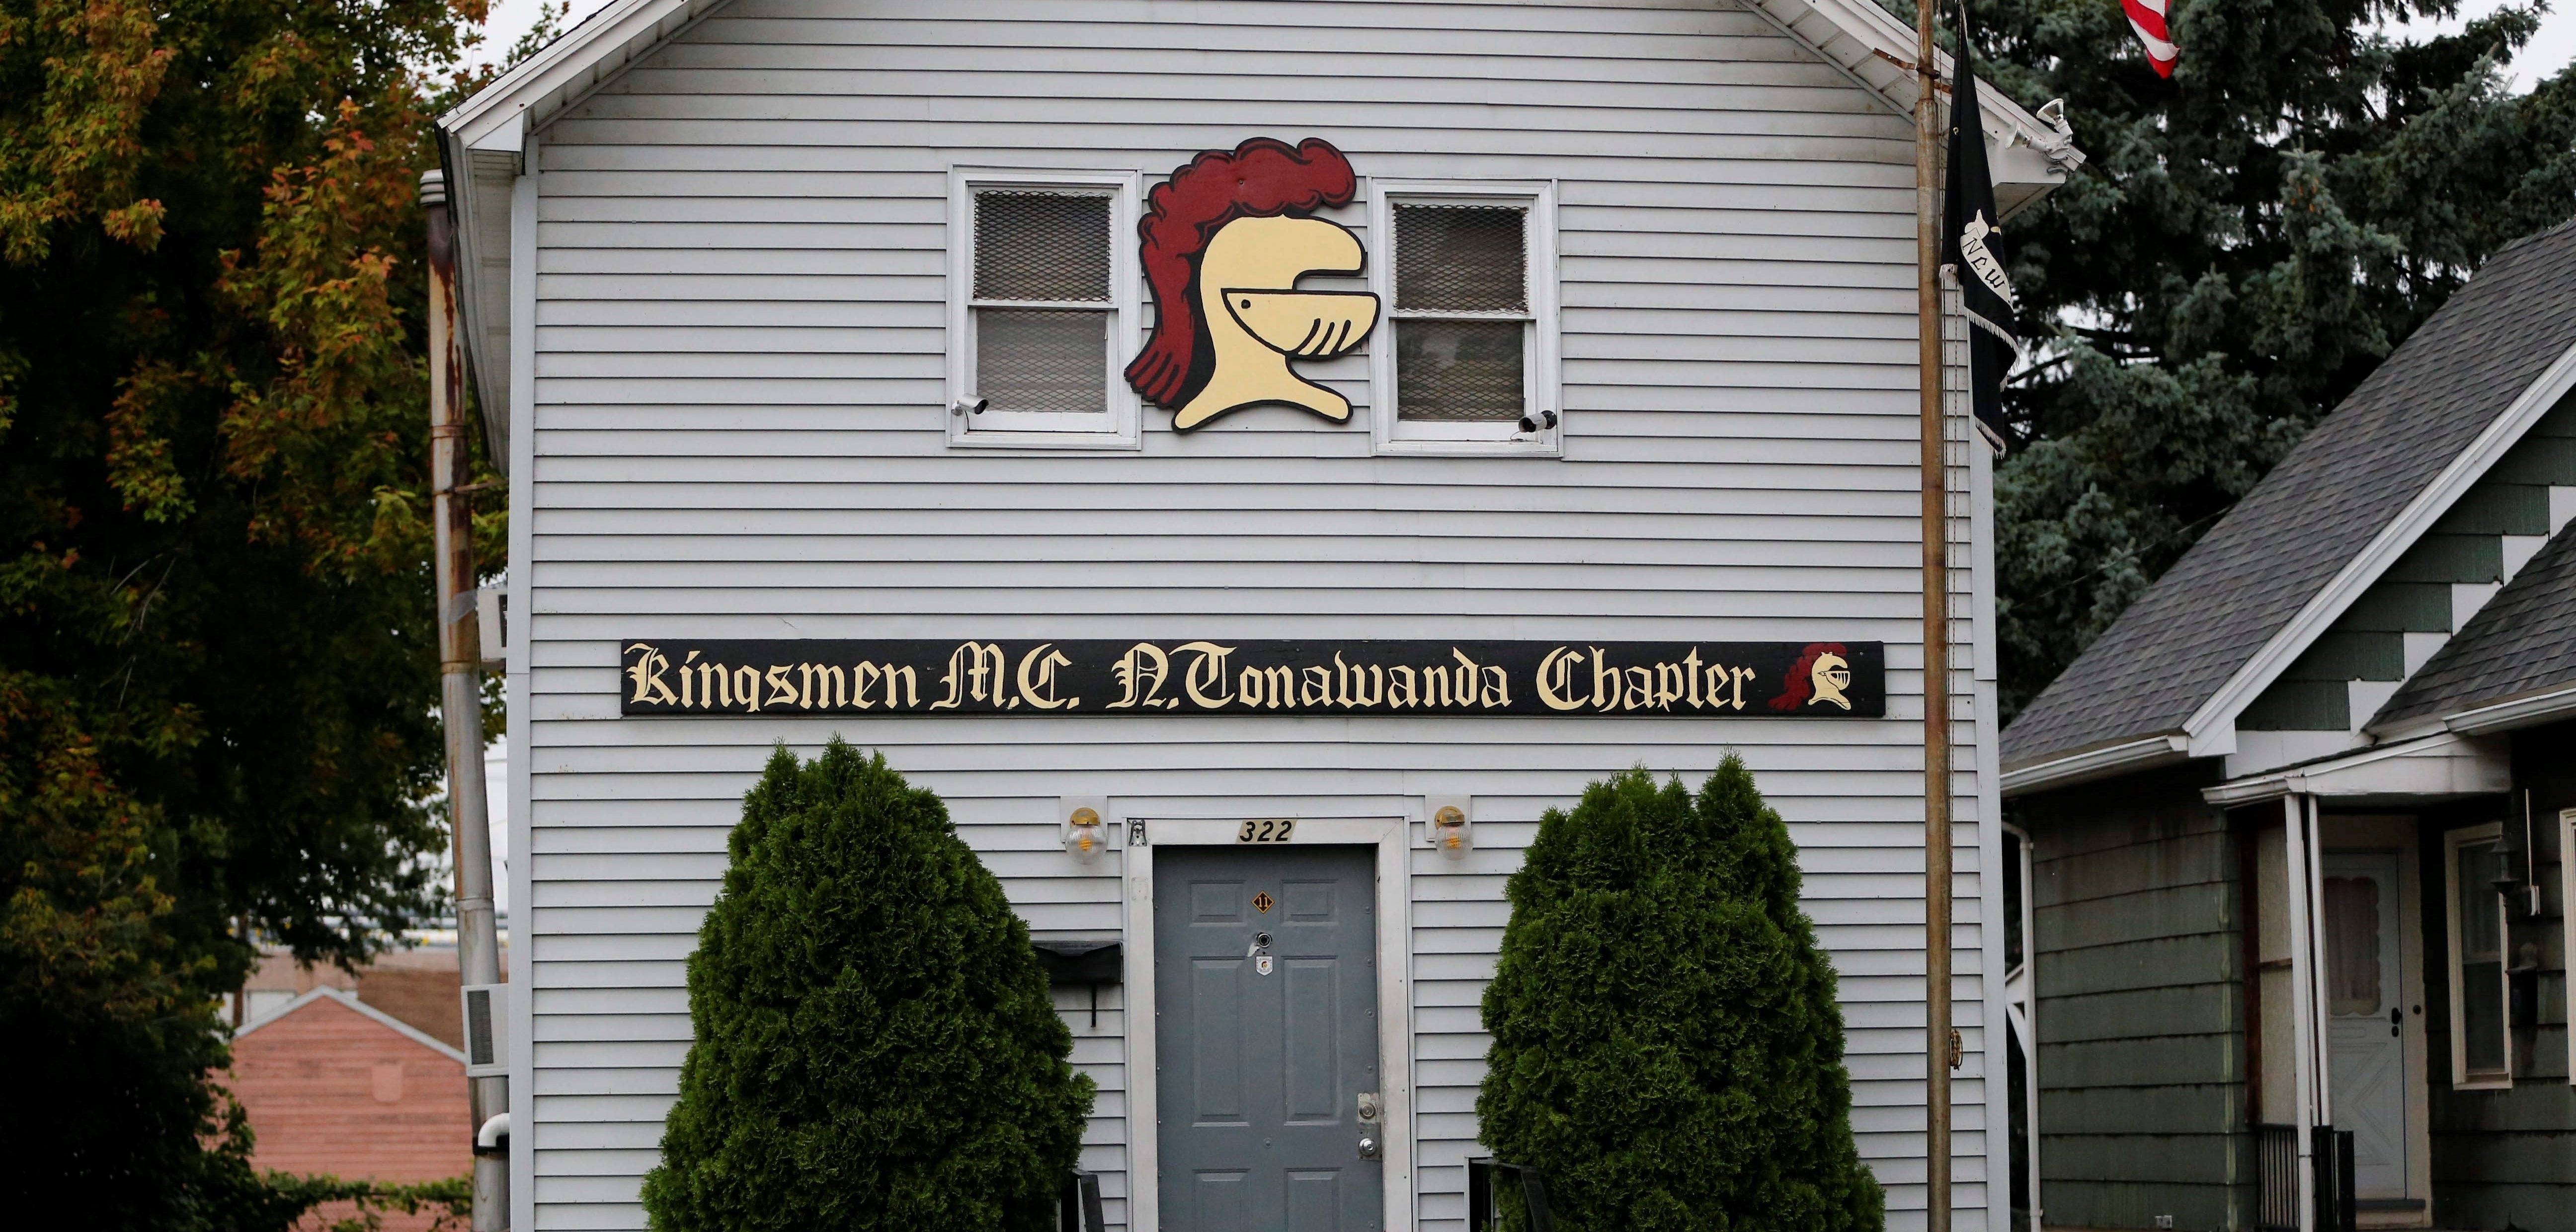 """At the crux of the Kingsmen case are the murders of Daniel """"DJ"""" Szymanski and Paul Maue by fellow gang member Andre """"Little Bear"""" Jenkins in September 2014 at the North Tonawanda chapter of the motorcycle club. (Derek Gee/News file photo)"""